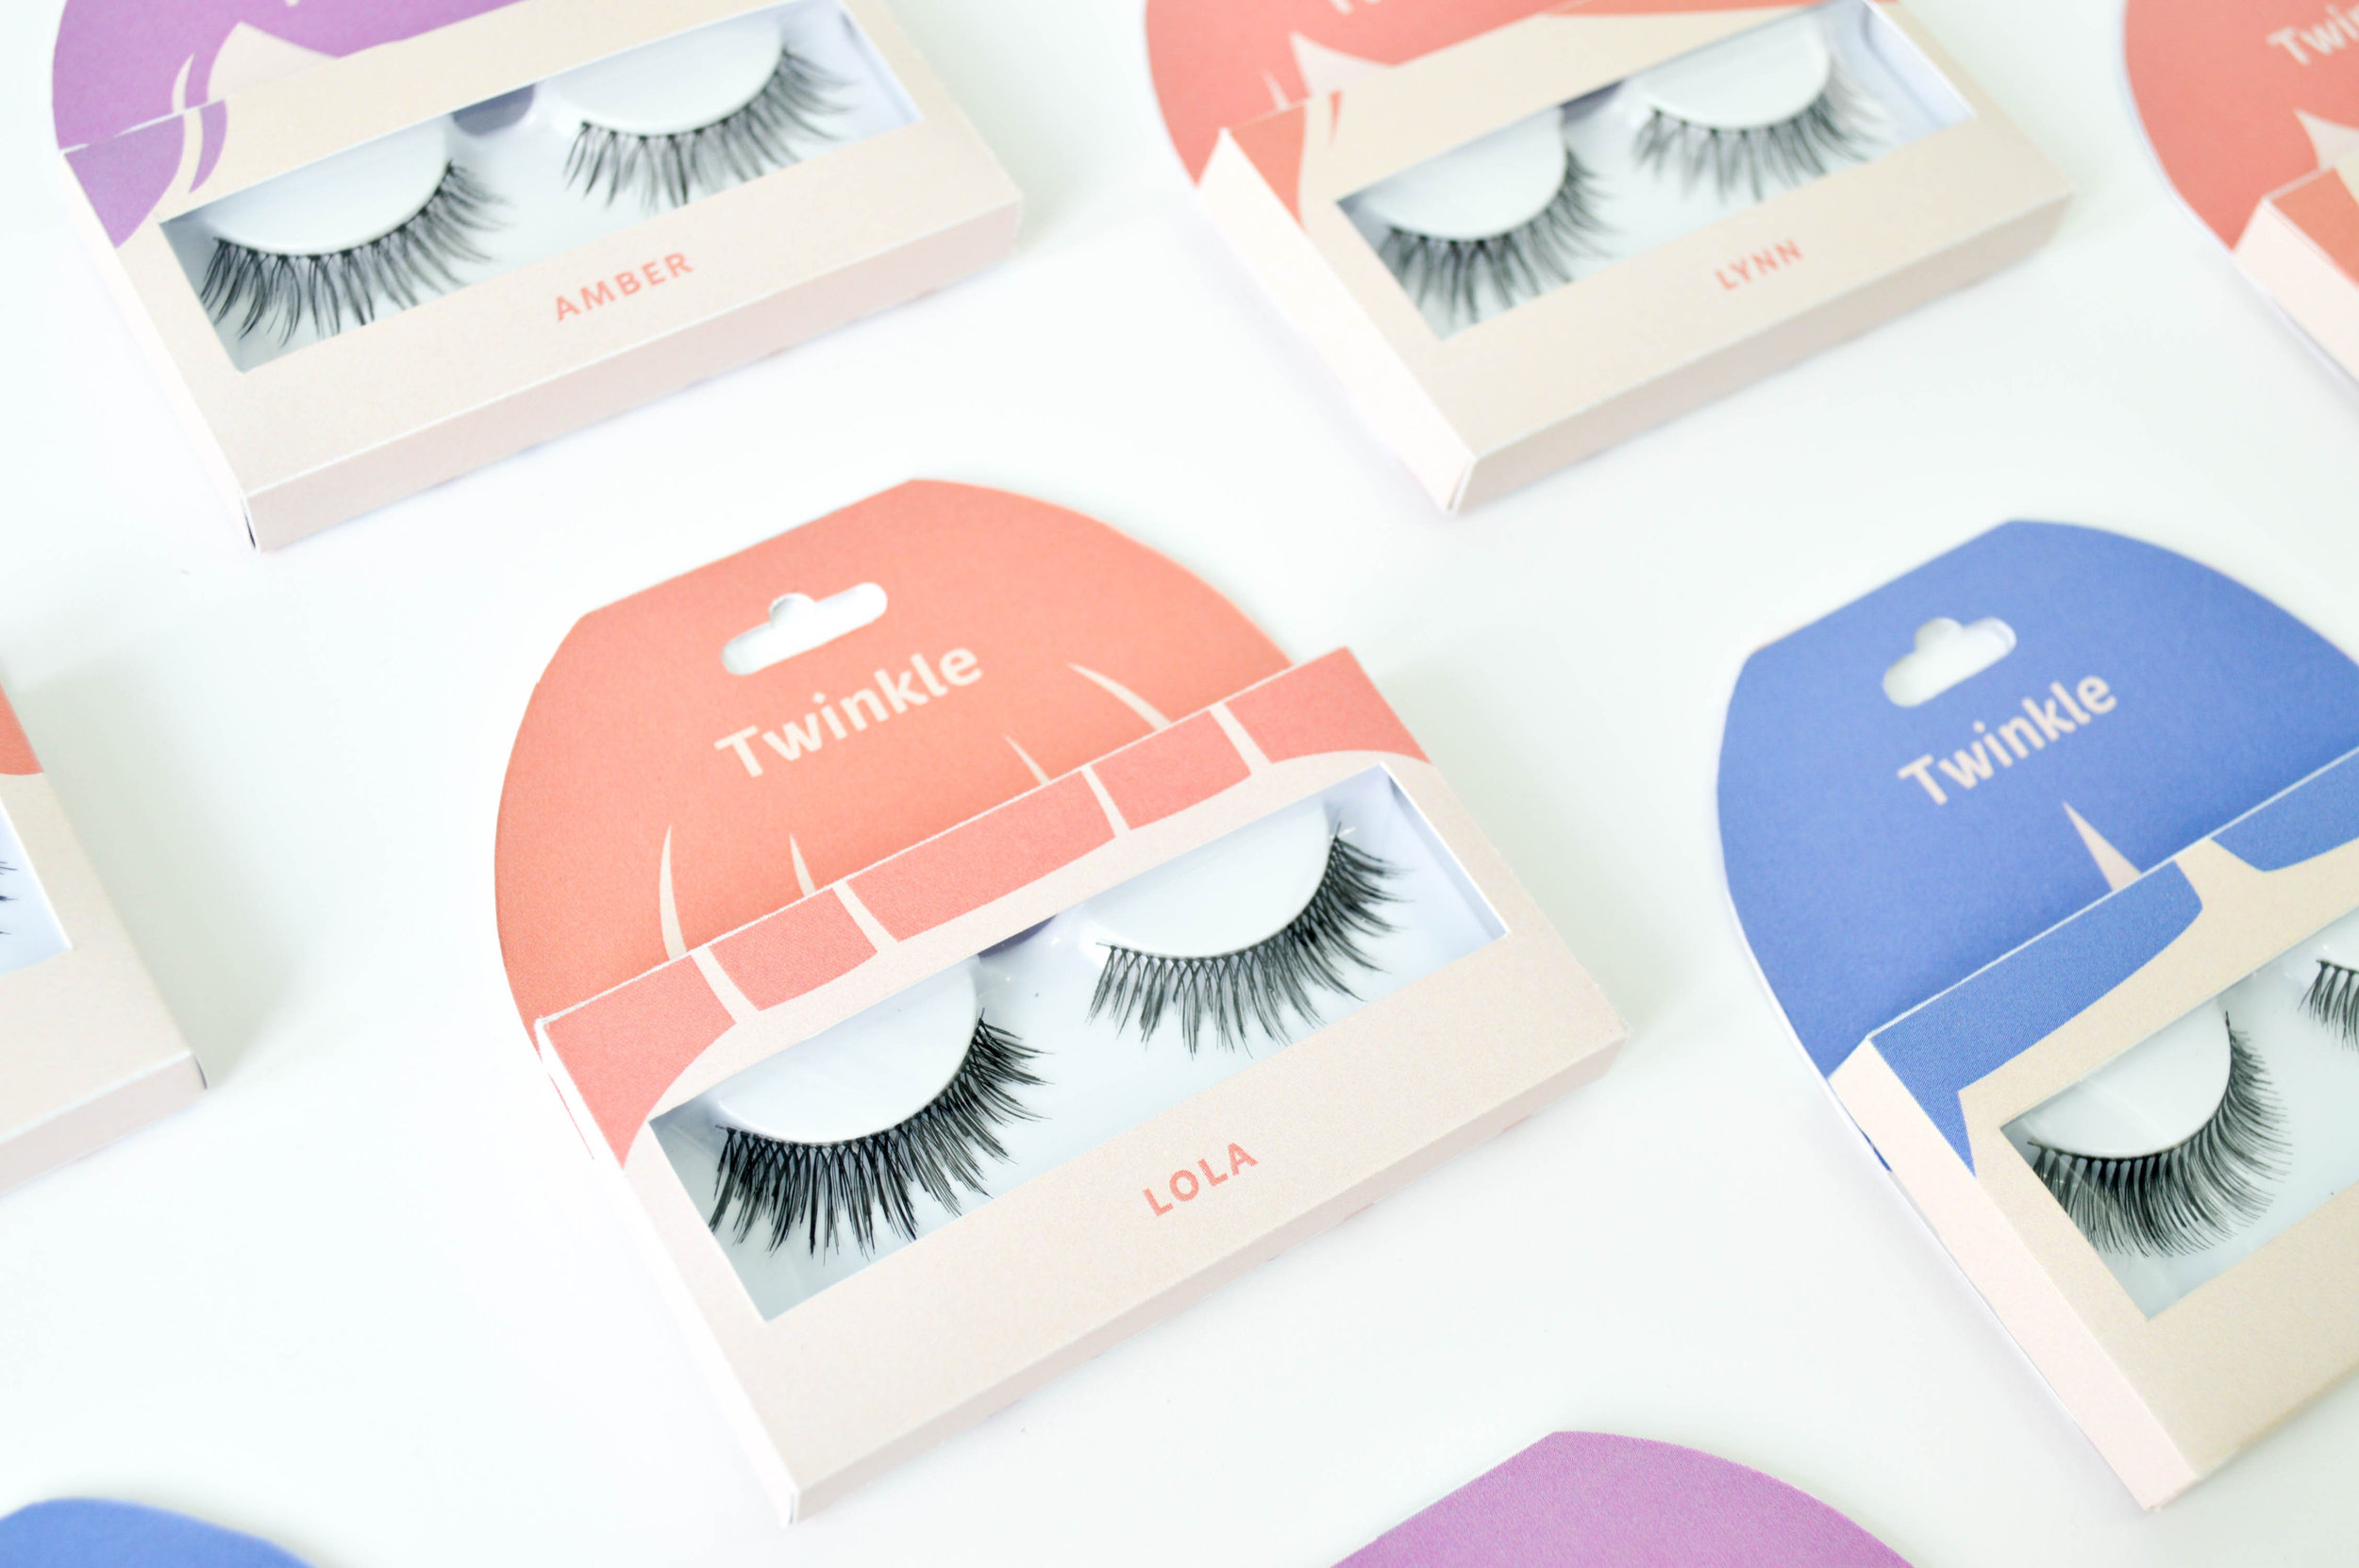 Synthetic Eyelashes Fun and Creative Packaging Design Concept